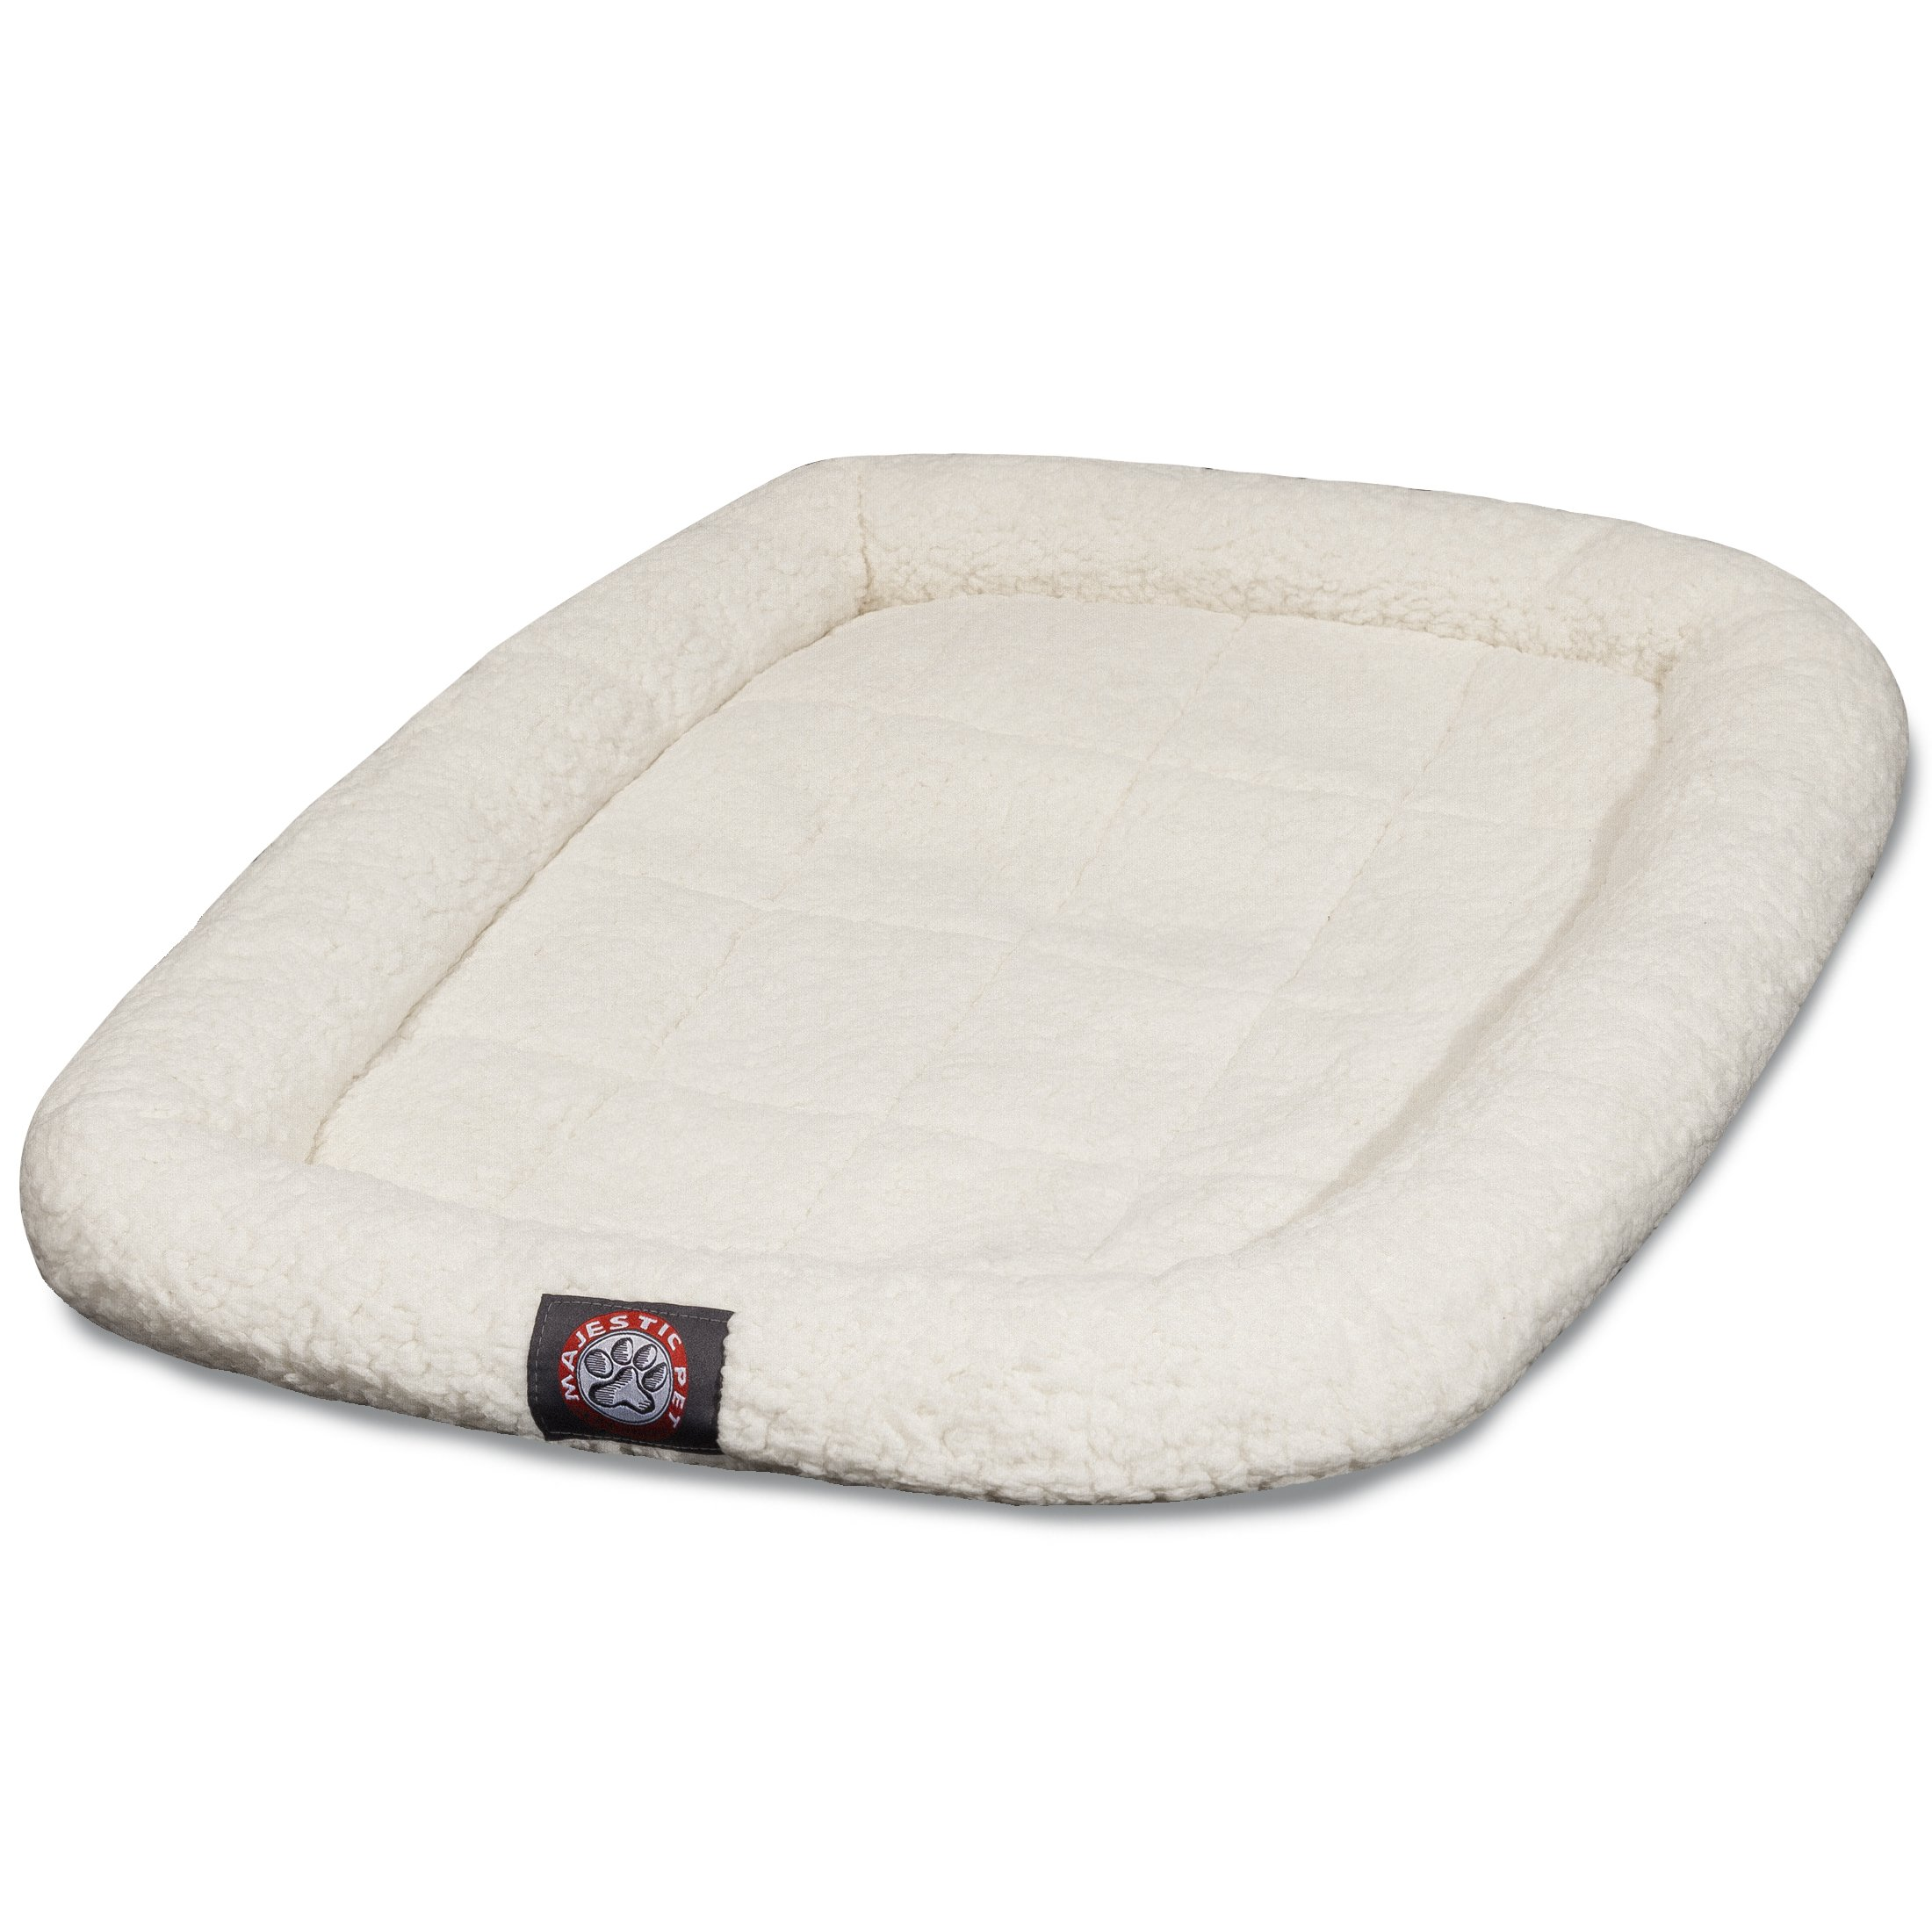 42 inch Sherpa Crate Pet Bed Mat By Majestic Pet Products by Majestic Pet (Image #1)